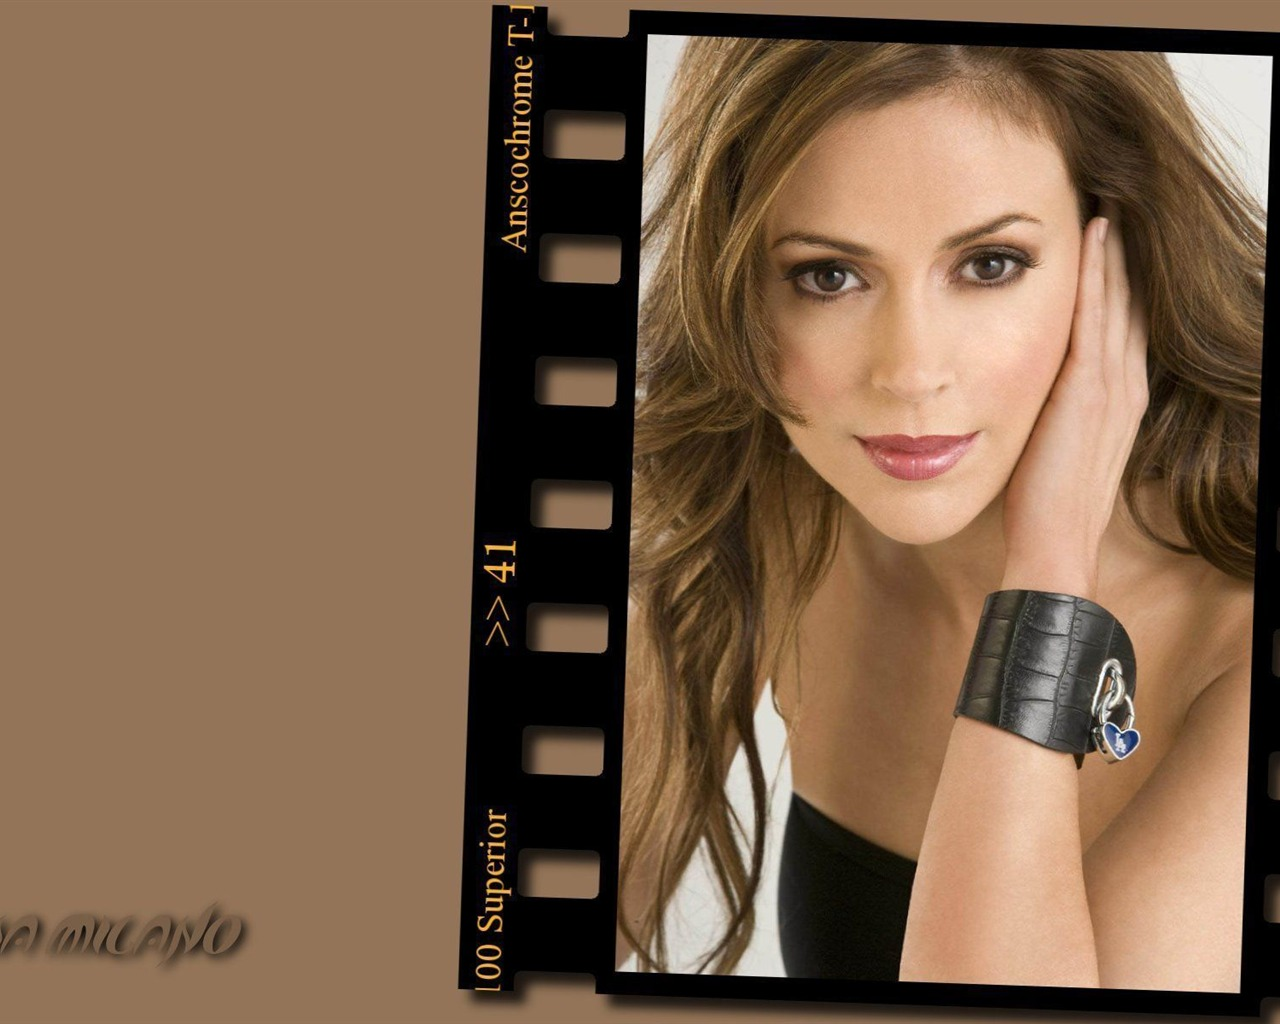 Alyssa Milano #045 - 1280x1024 Wallpapers Pictures Photos Images